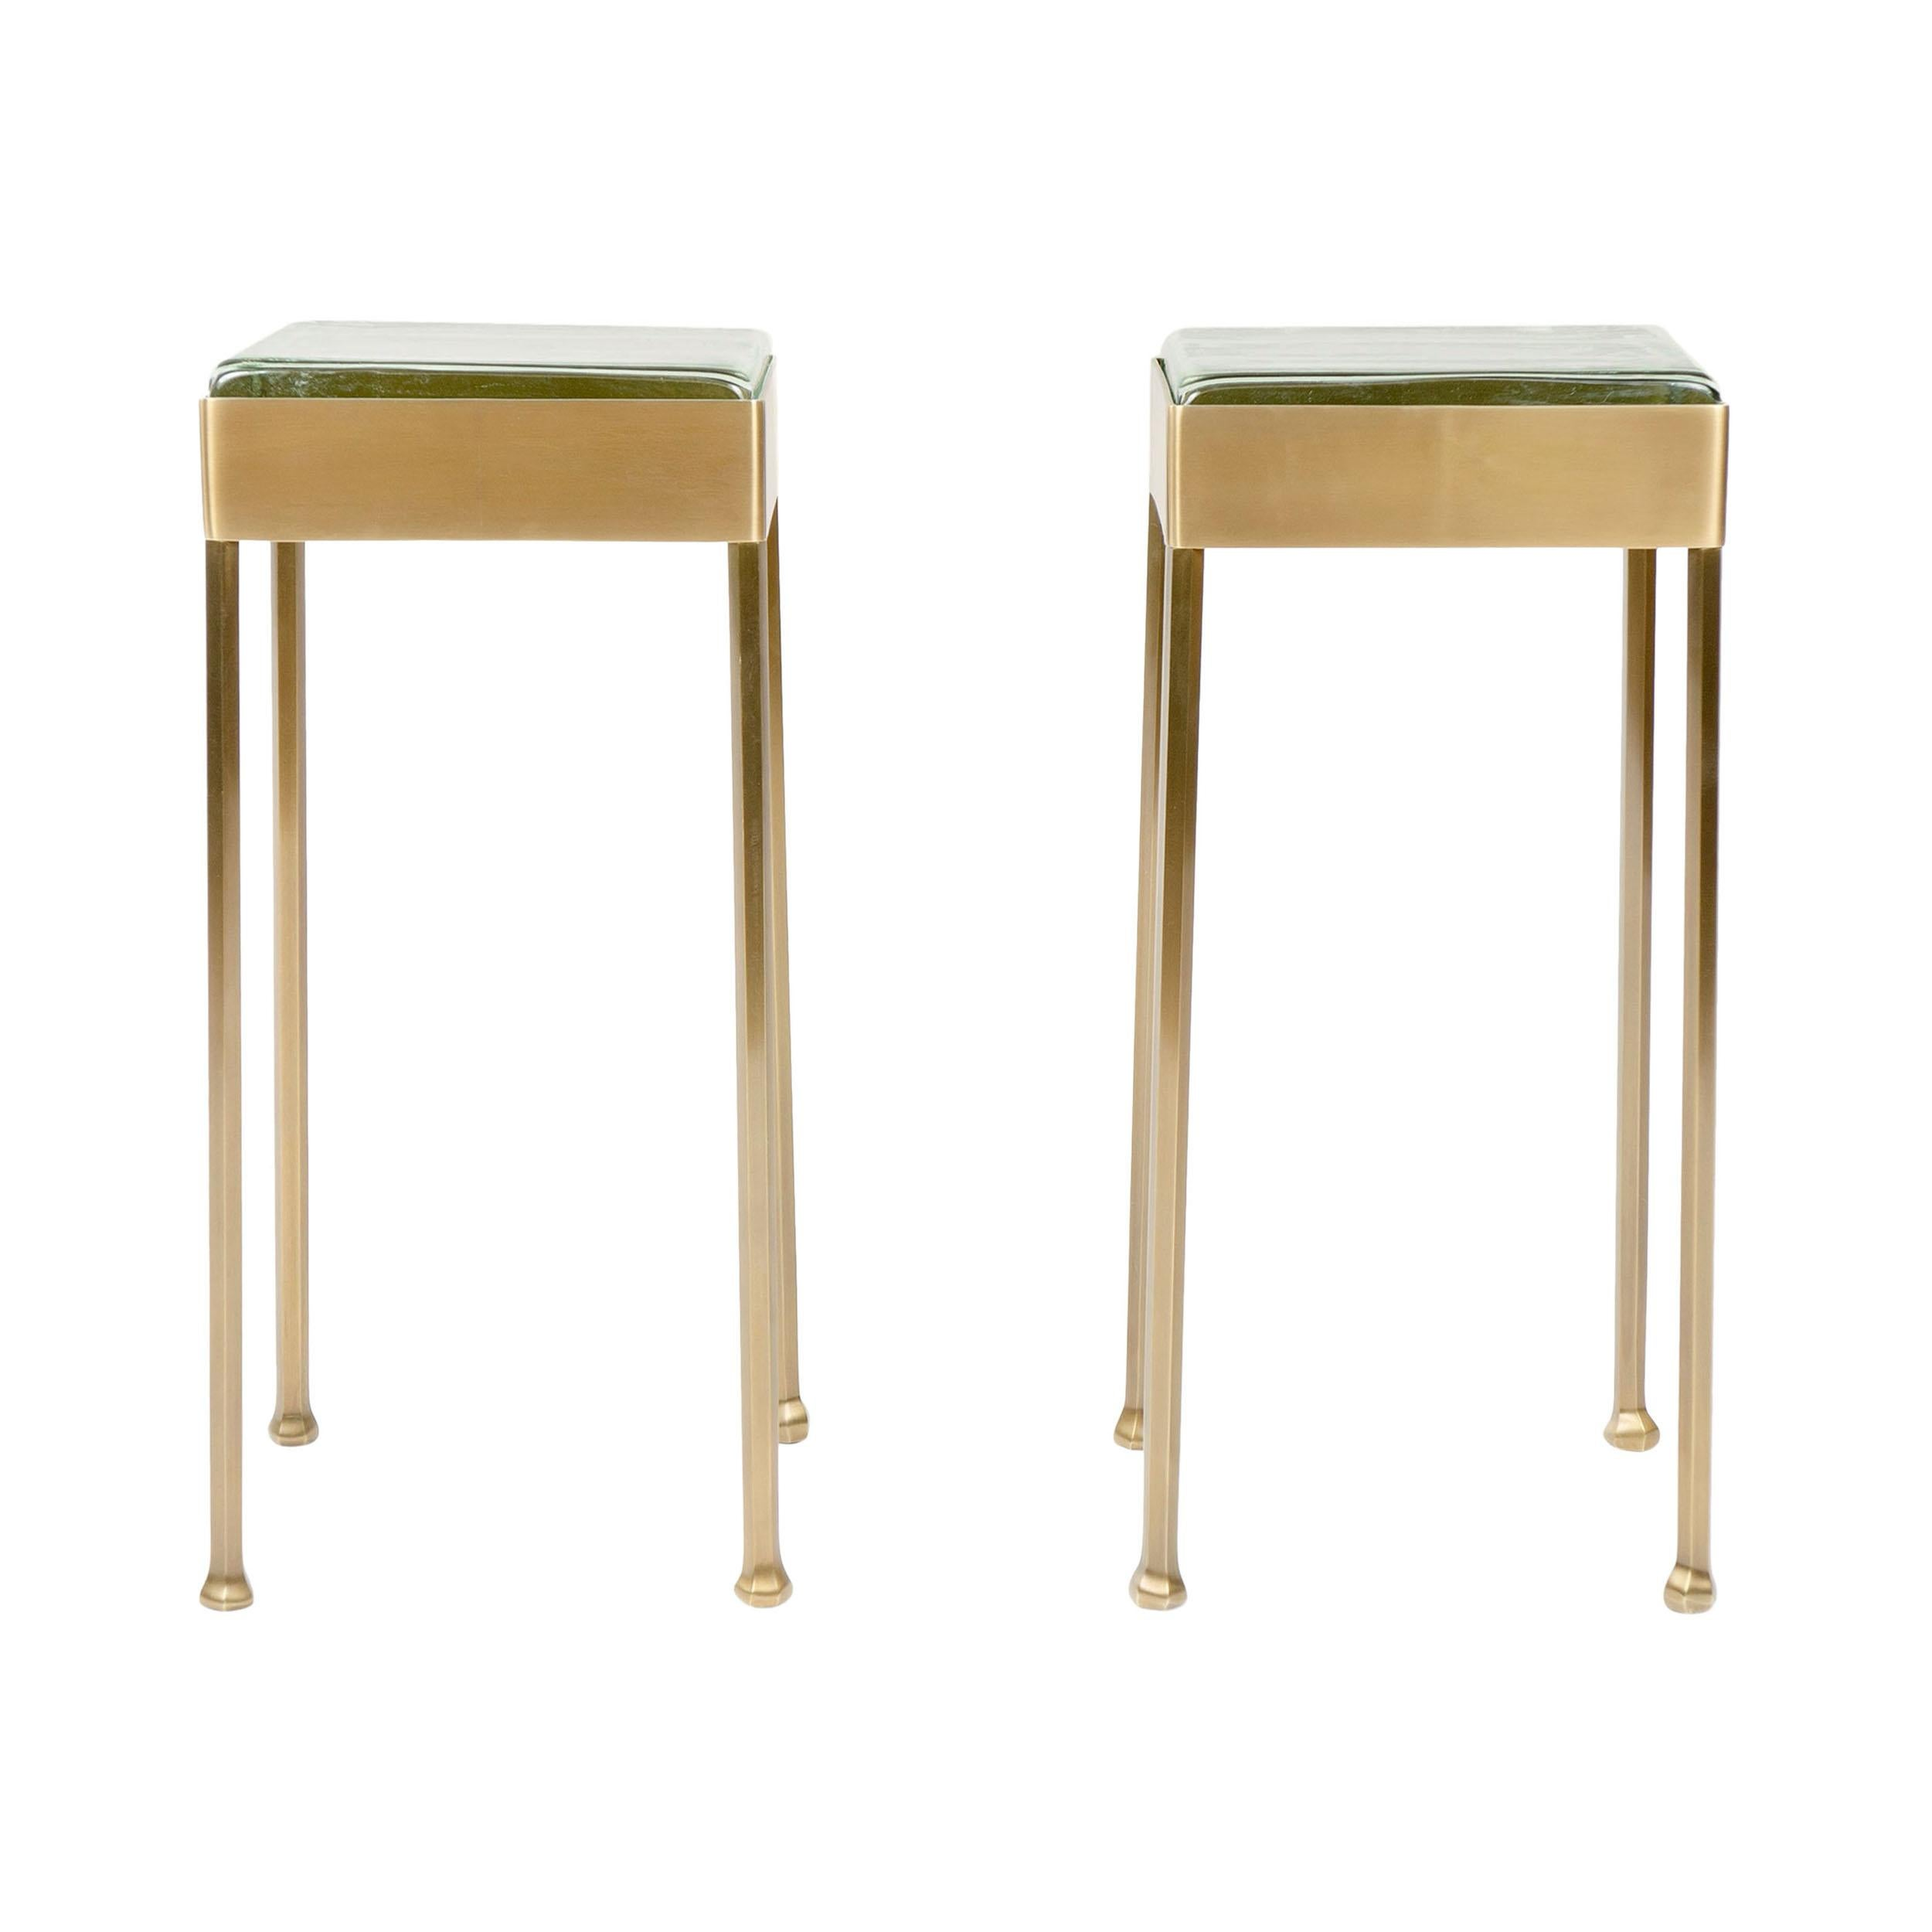 WYETH Original Glass Block Side Table in Patinated Bronze